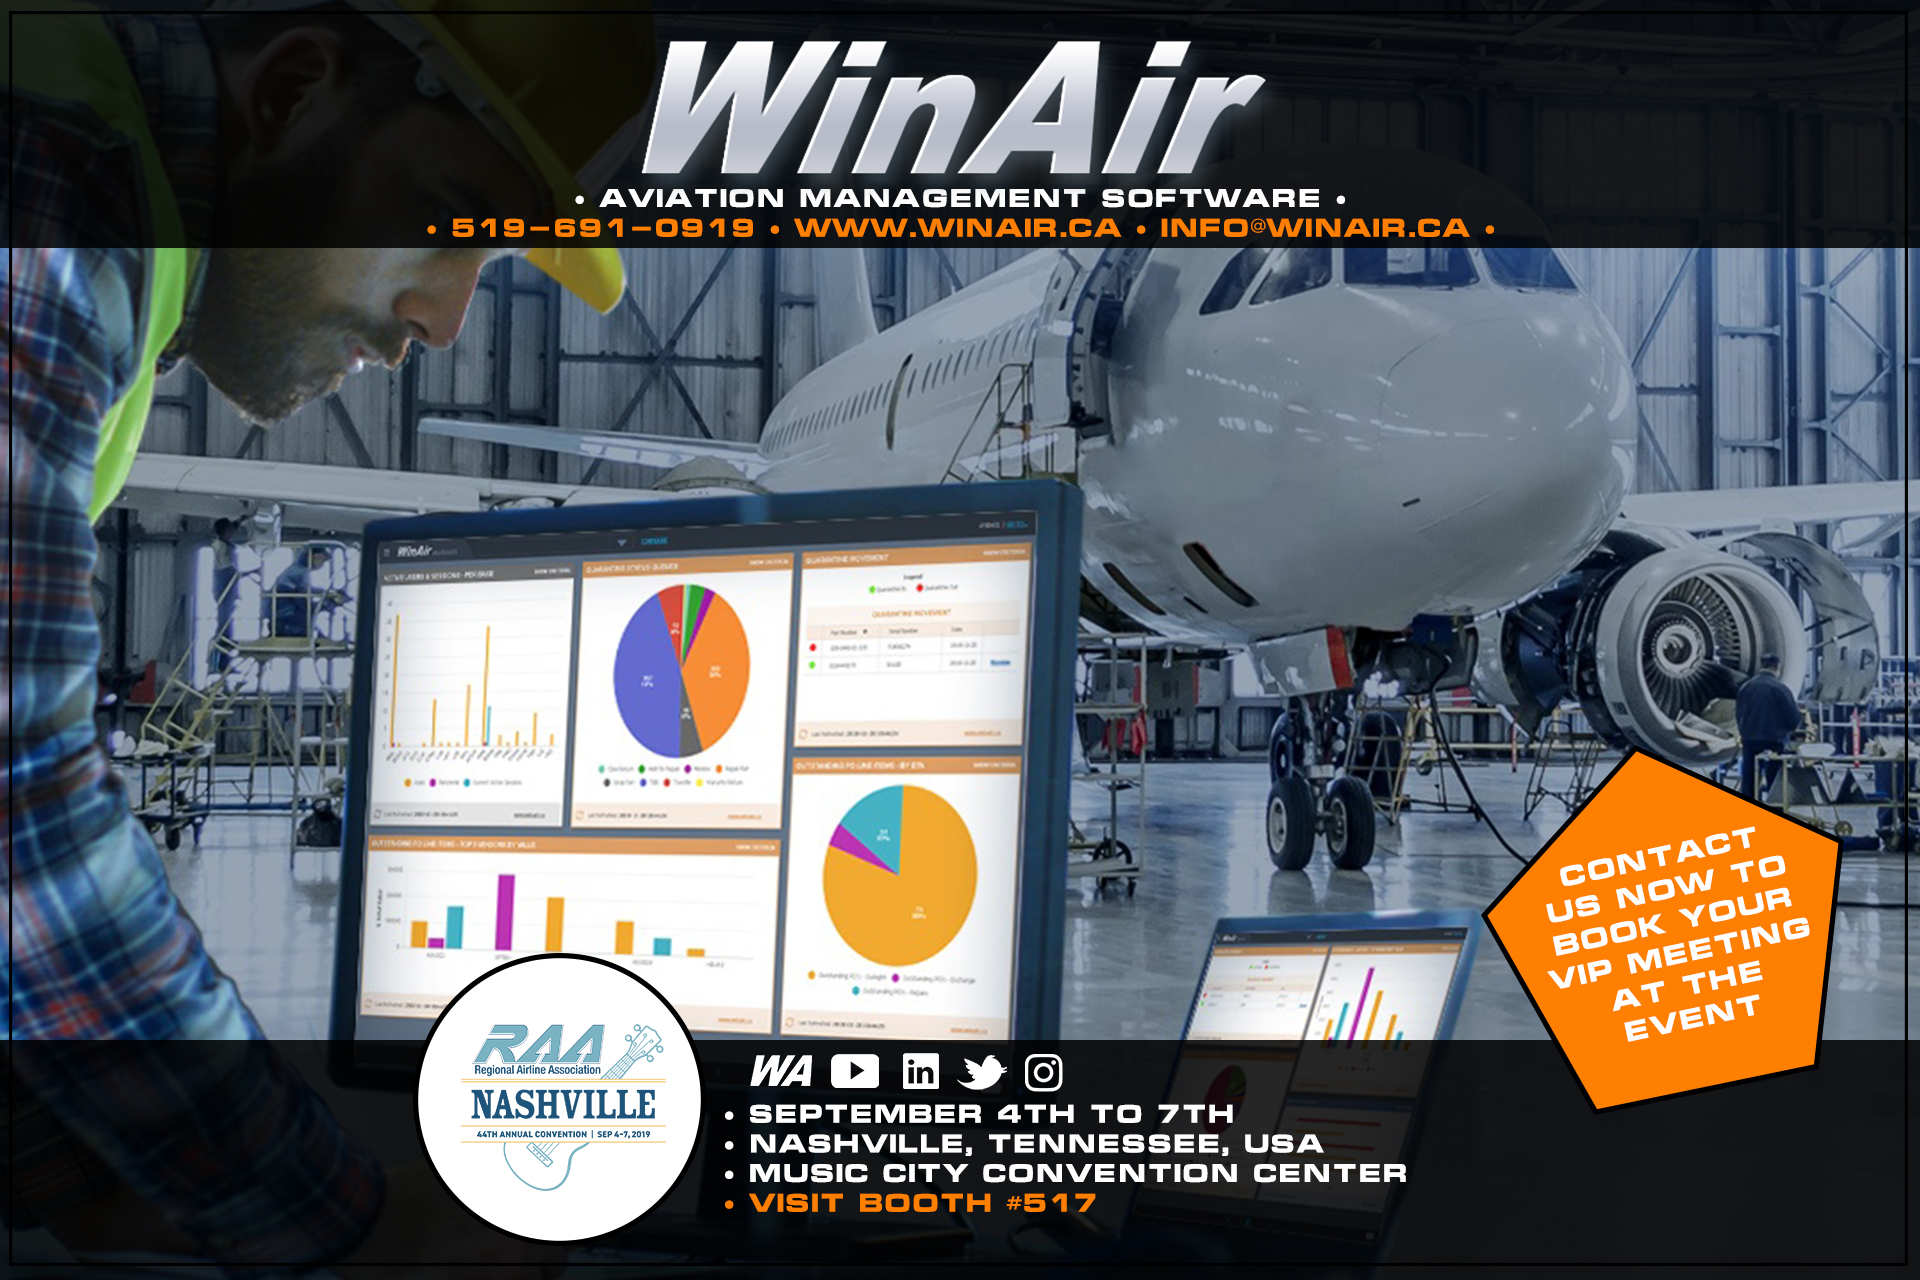 WinAir - 2019 Regional Airline Association 44th Annual RAA Convention - Aviation Management Software - WinAir dashboards displayed in aircraft hangar